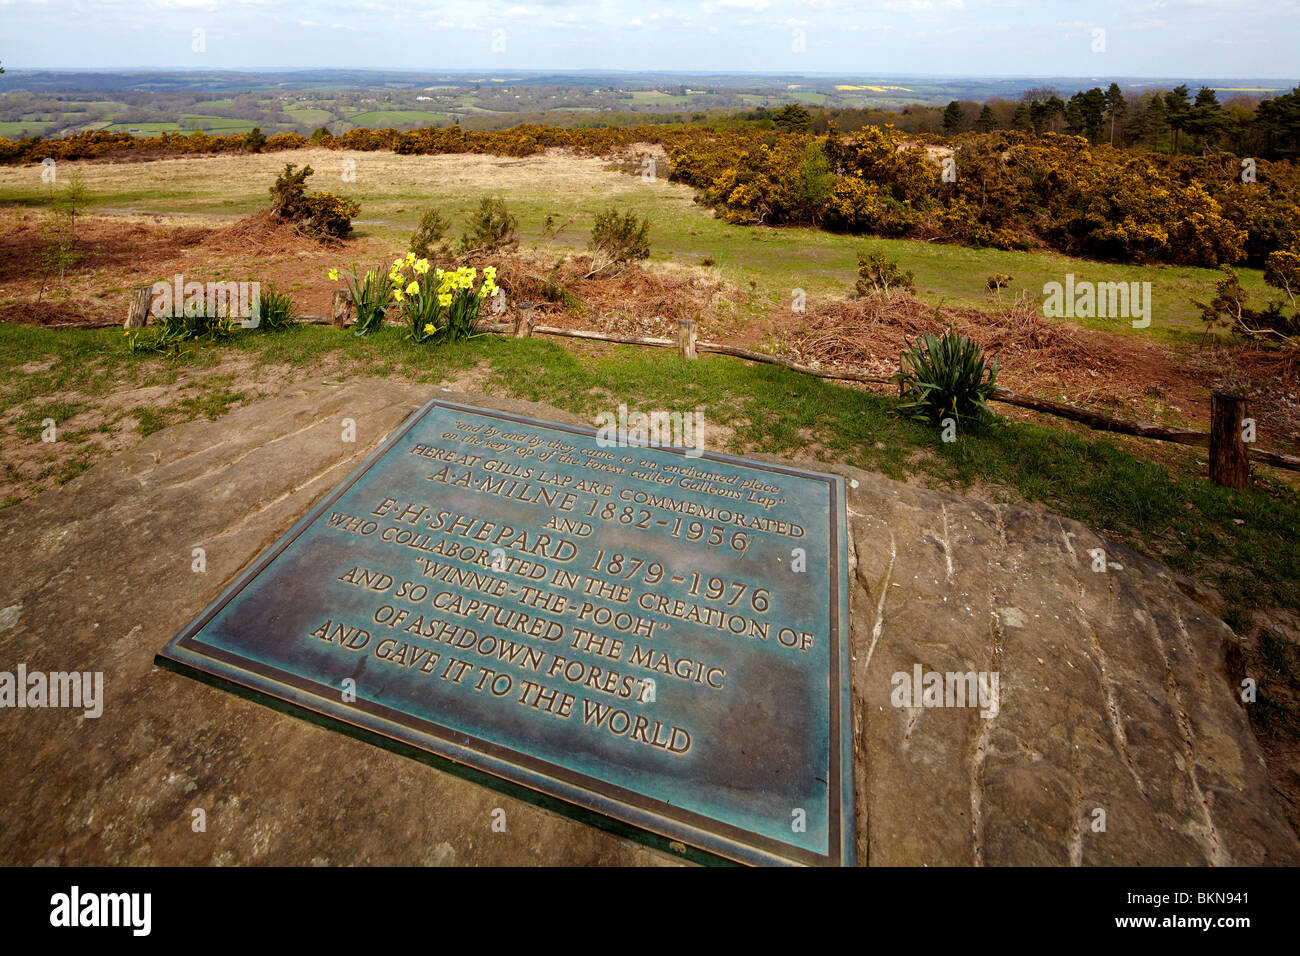 Memorial tablet to a a milne and e h shepard writer and illustrator memorial tablet to a a milne and e h shepard writer and illustrator of the winnie the pooh stories ashdown forest voltagebd Gallery